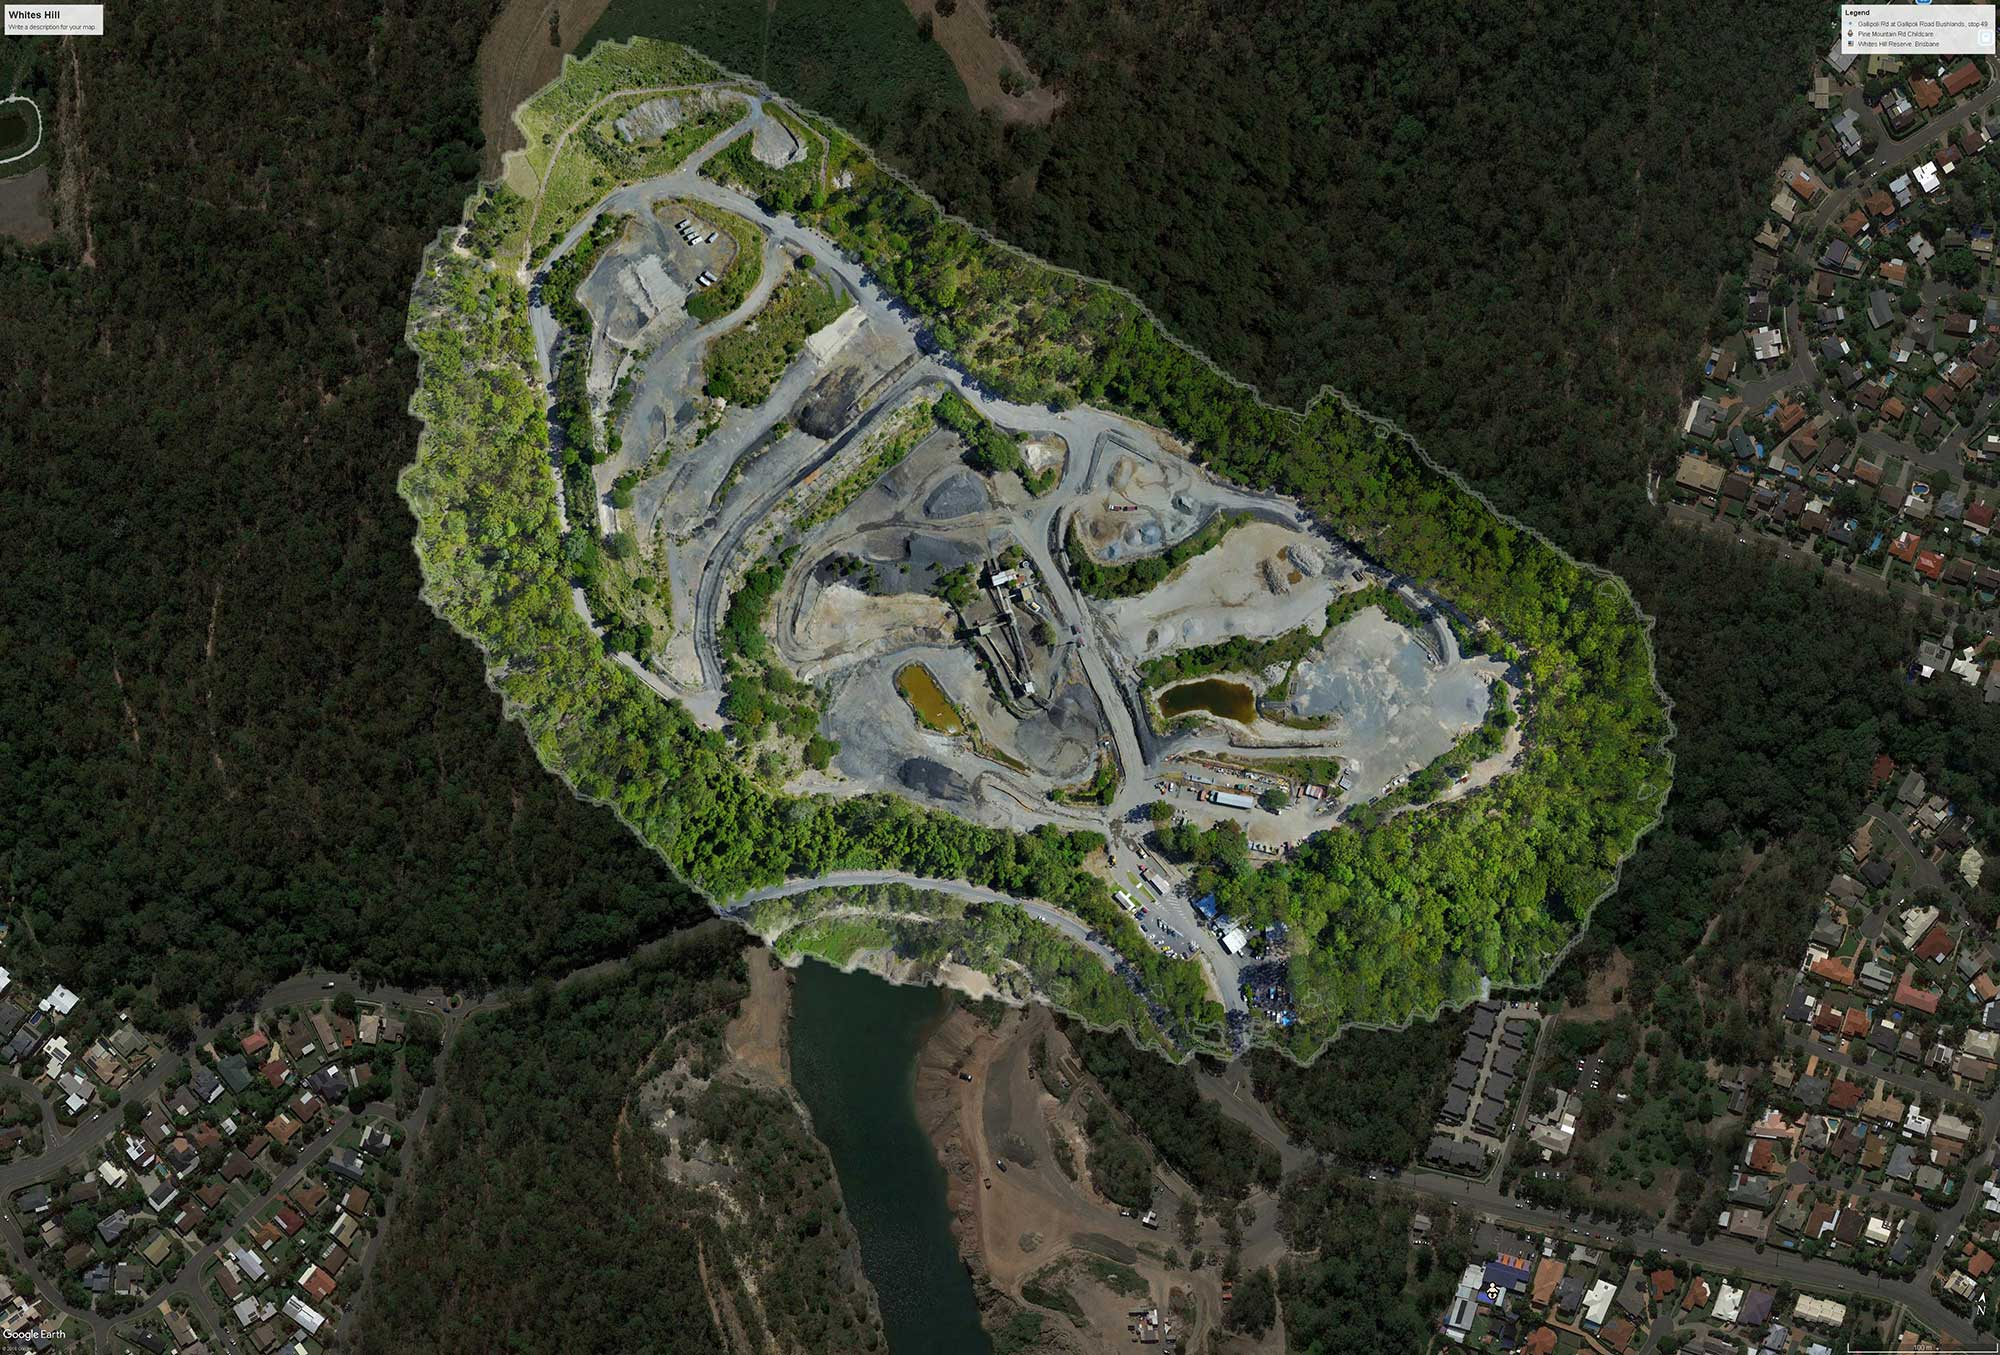 Drone mapping orthomosaic exported to GIS Google Earth Pro